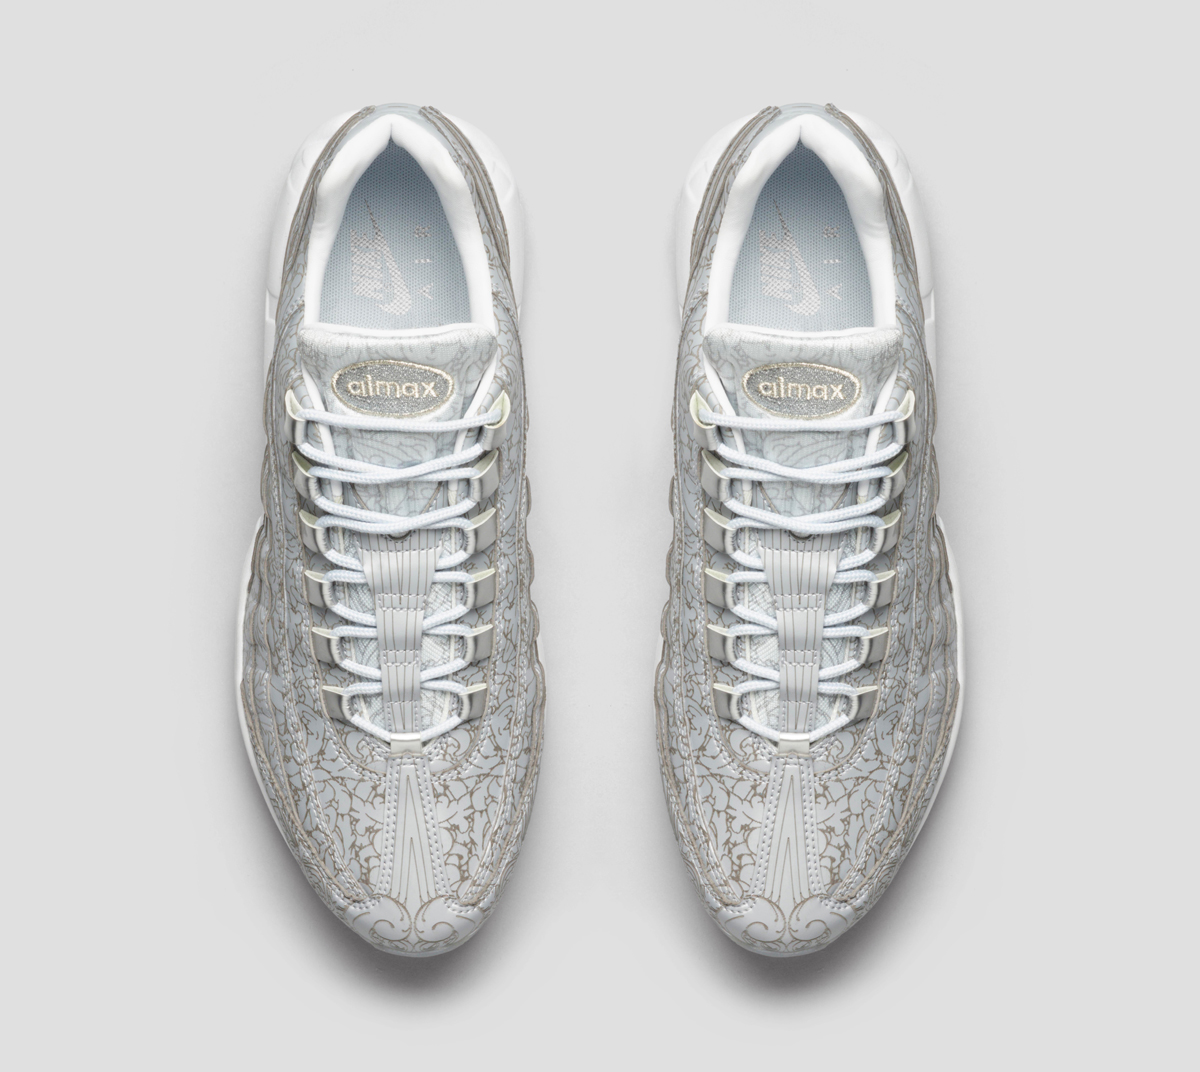 66c059fb06 The Details on the 'Platinum' Nike Air Max 95 Are Insane | Sole Collector